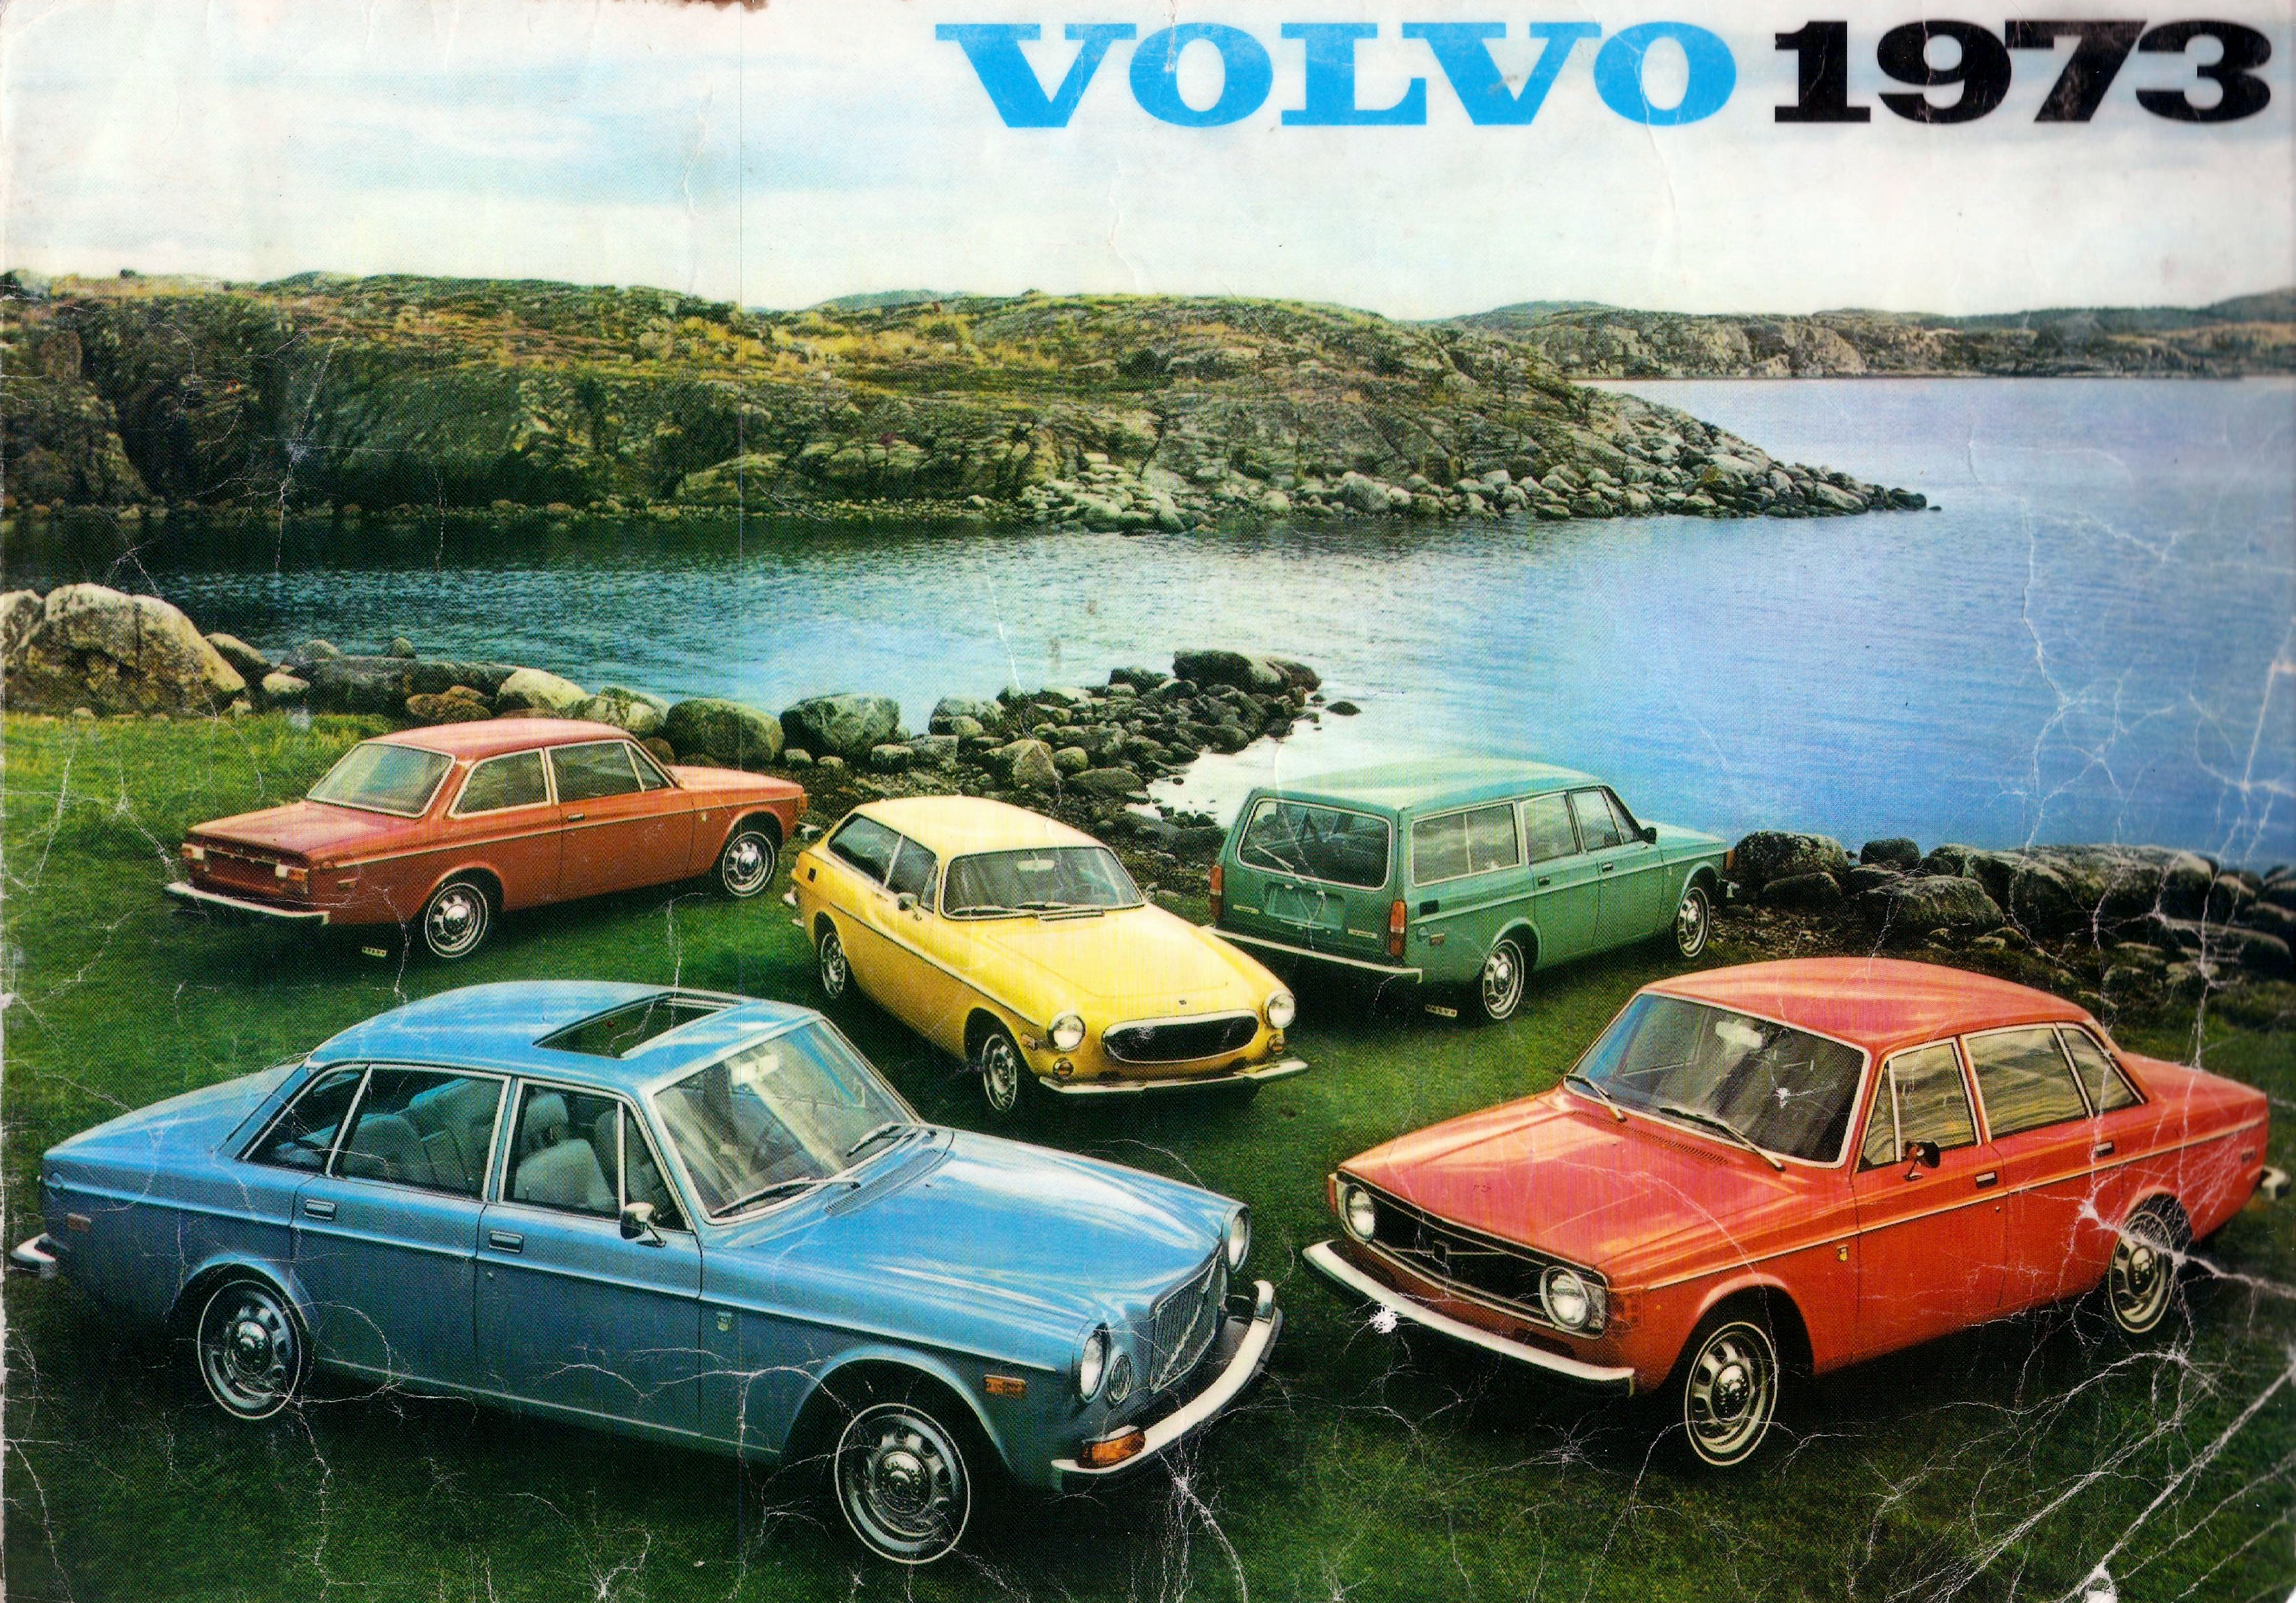 I used to drive a '73 Volvo 142 ...